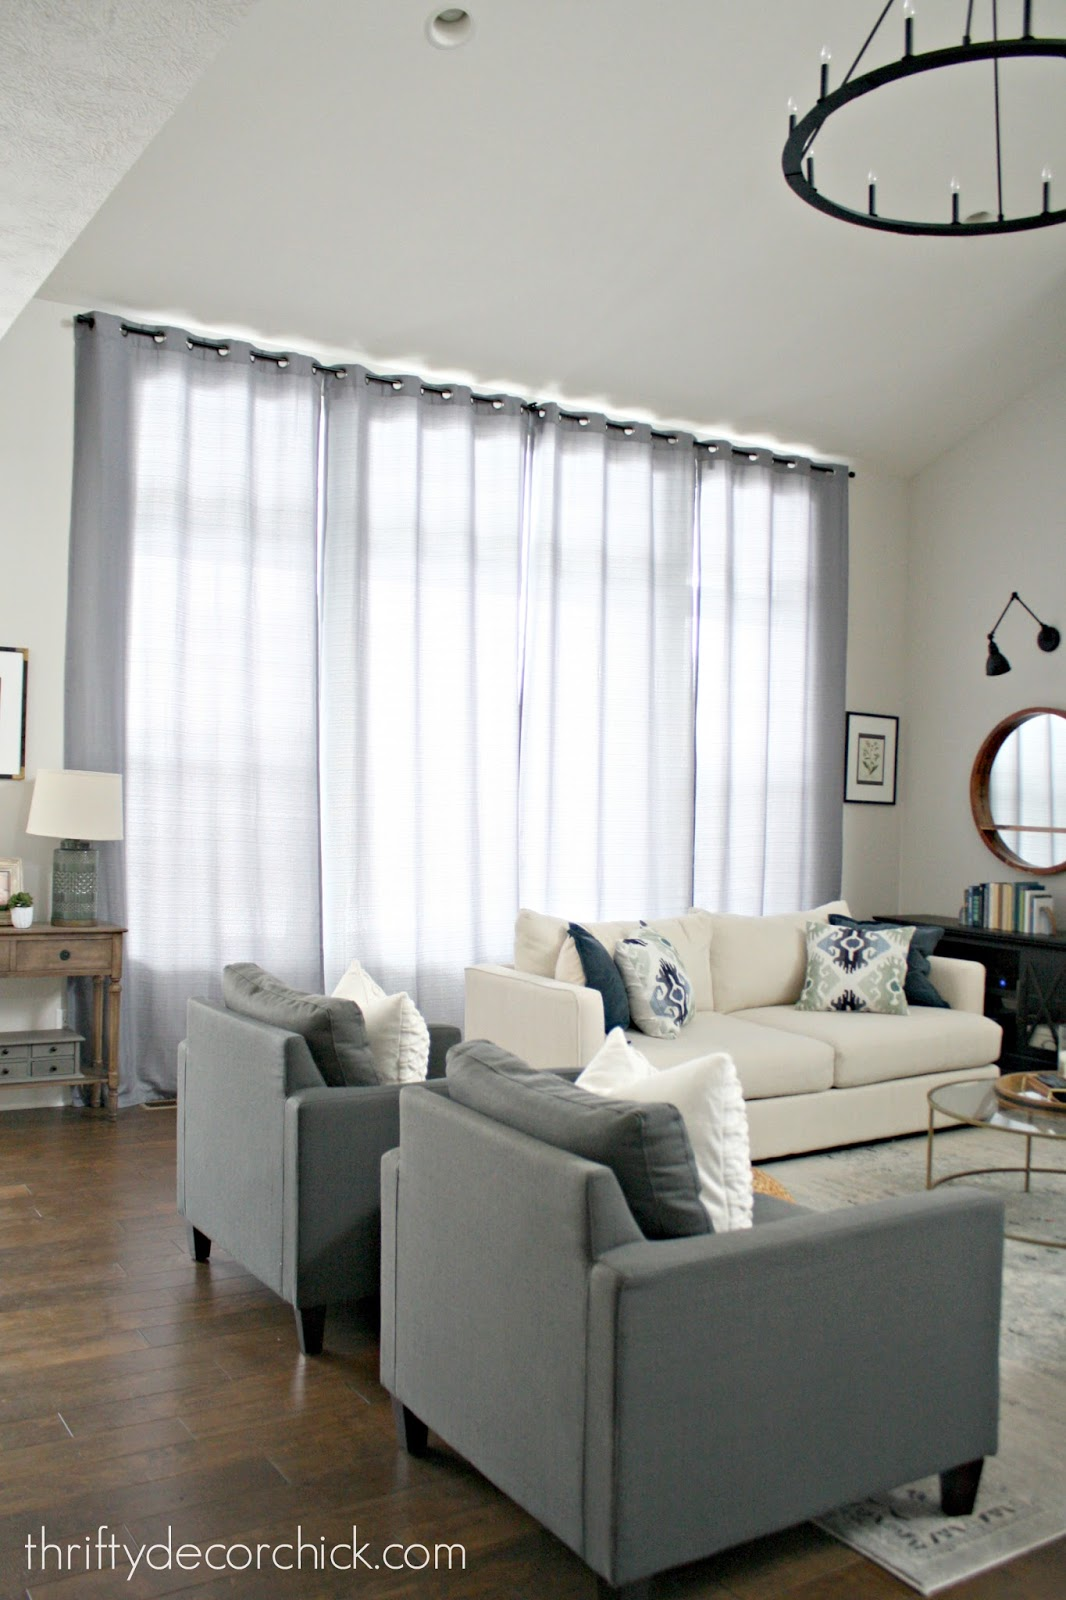 inexpensive drapes for big windows